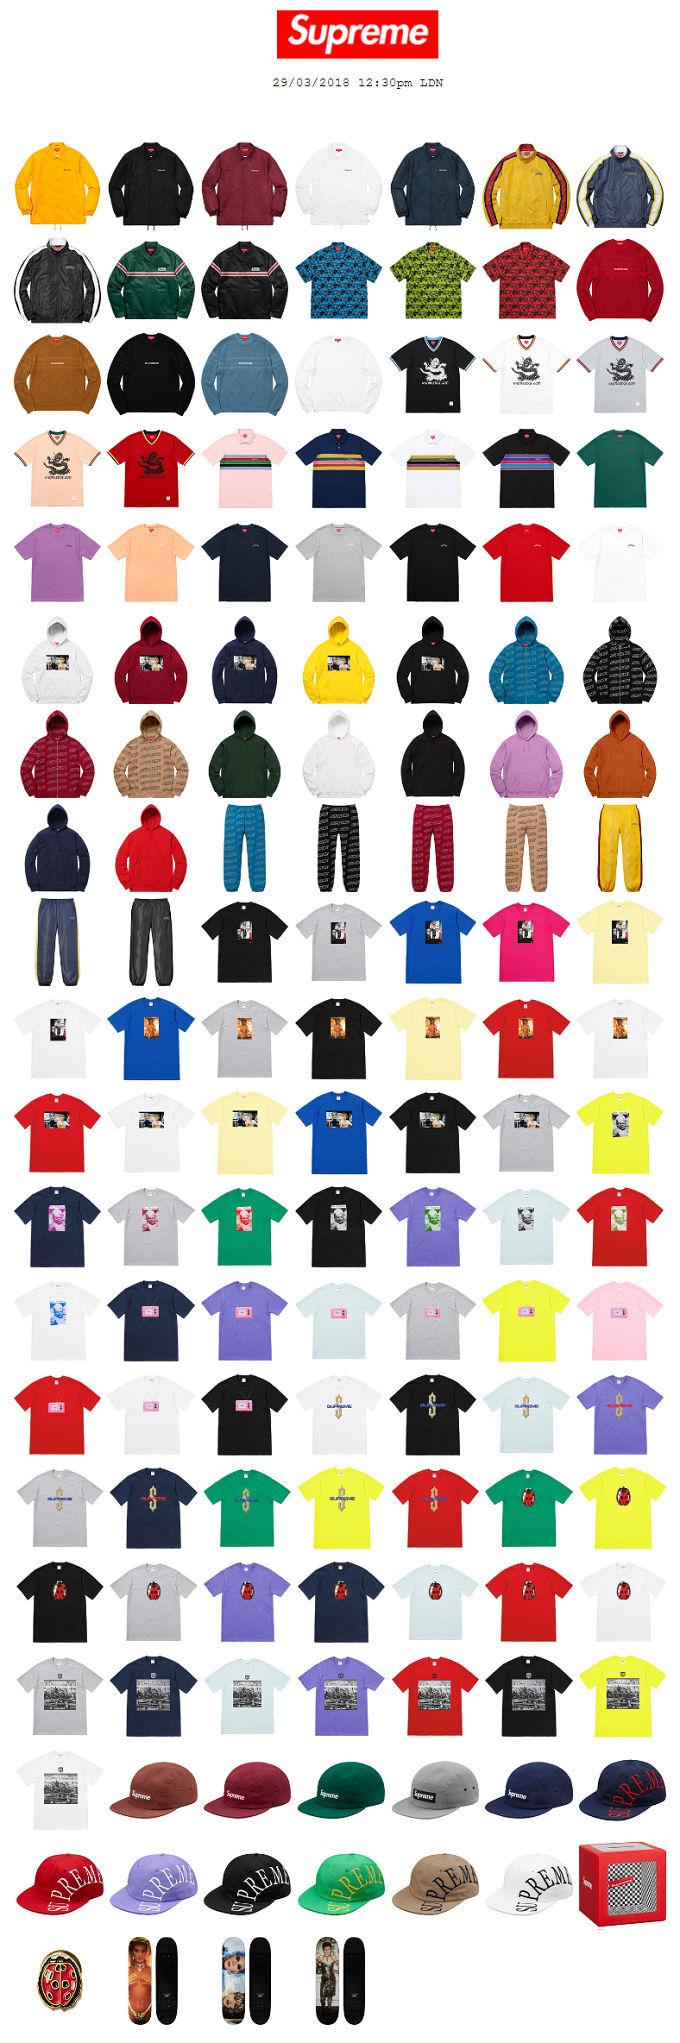 supreme-online-store-20180331-week6-release-items